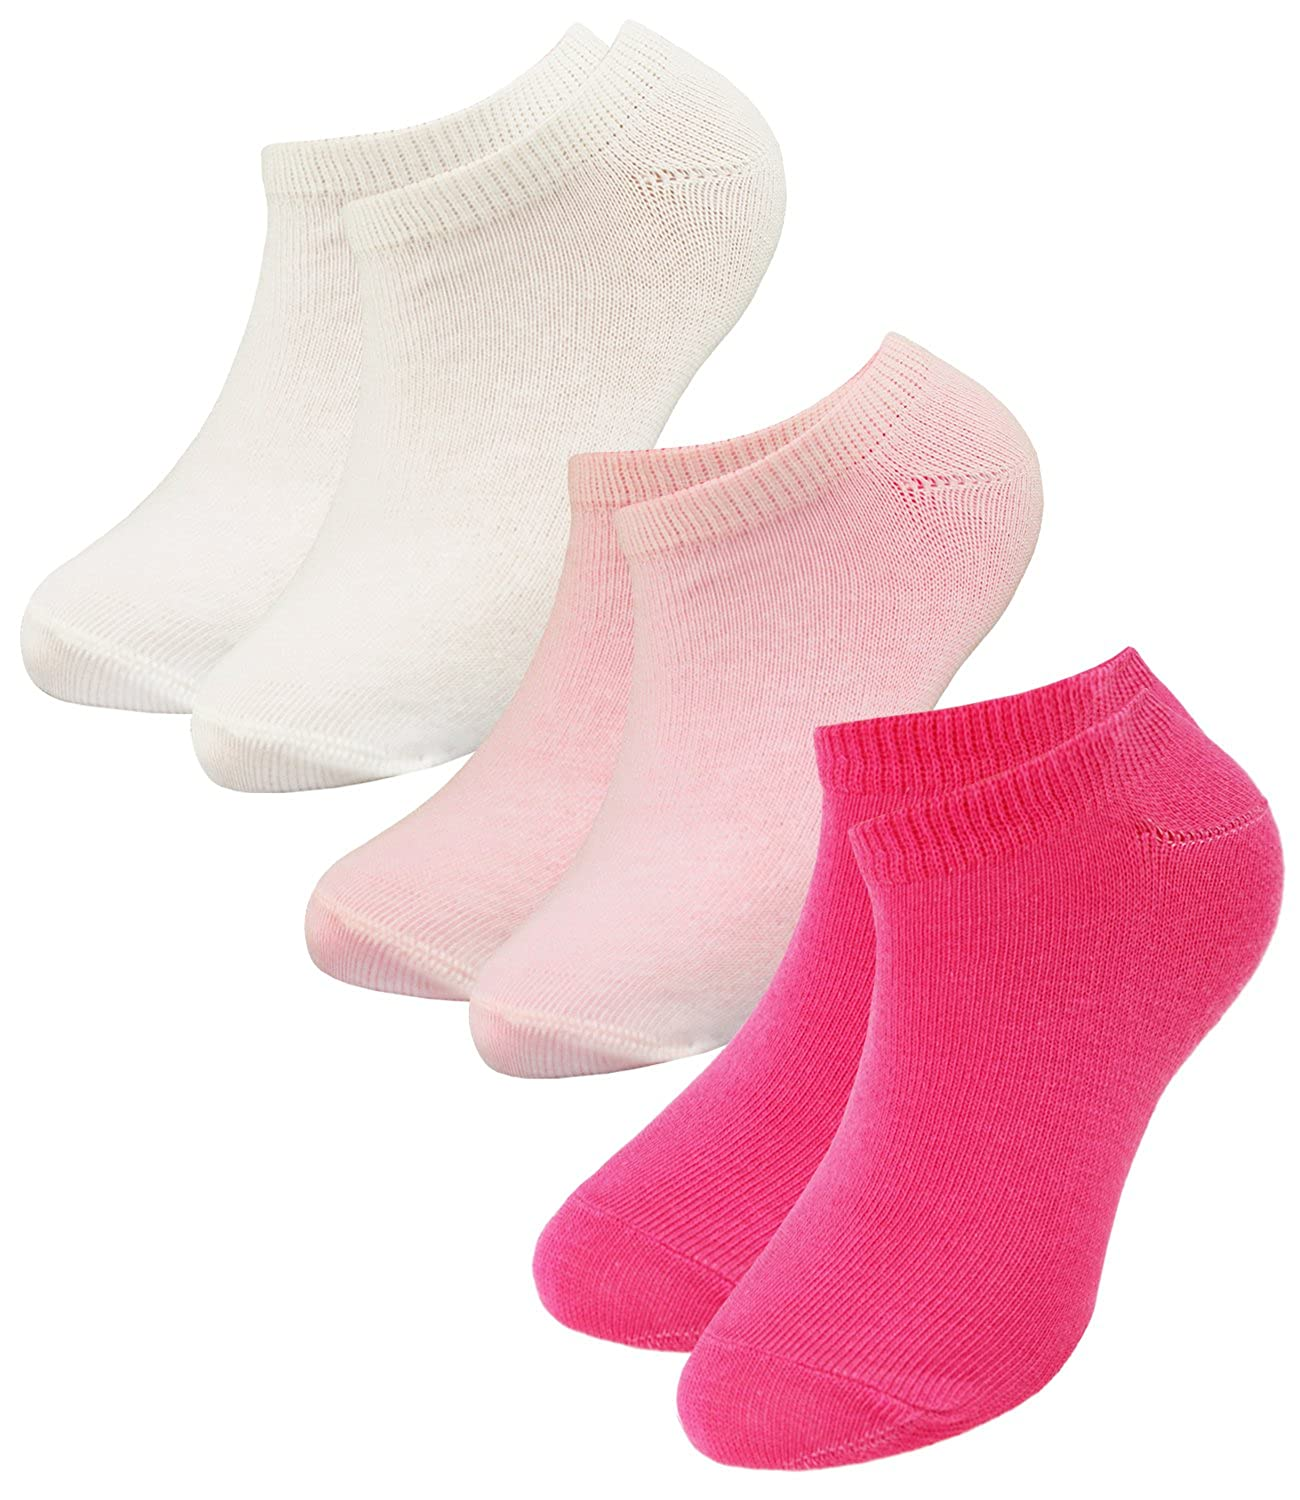 EveryKid-Fashionguide Ewers 1 EW-24191-S17-BJ0 incl 2 or 3 Pack Baby Sneaker Boys Trainer Socks Sneakers Short One-tone Babys